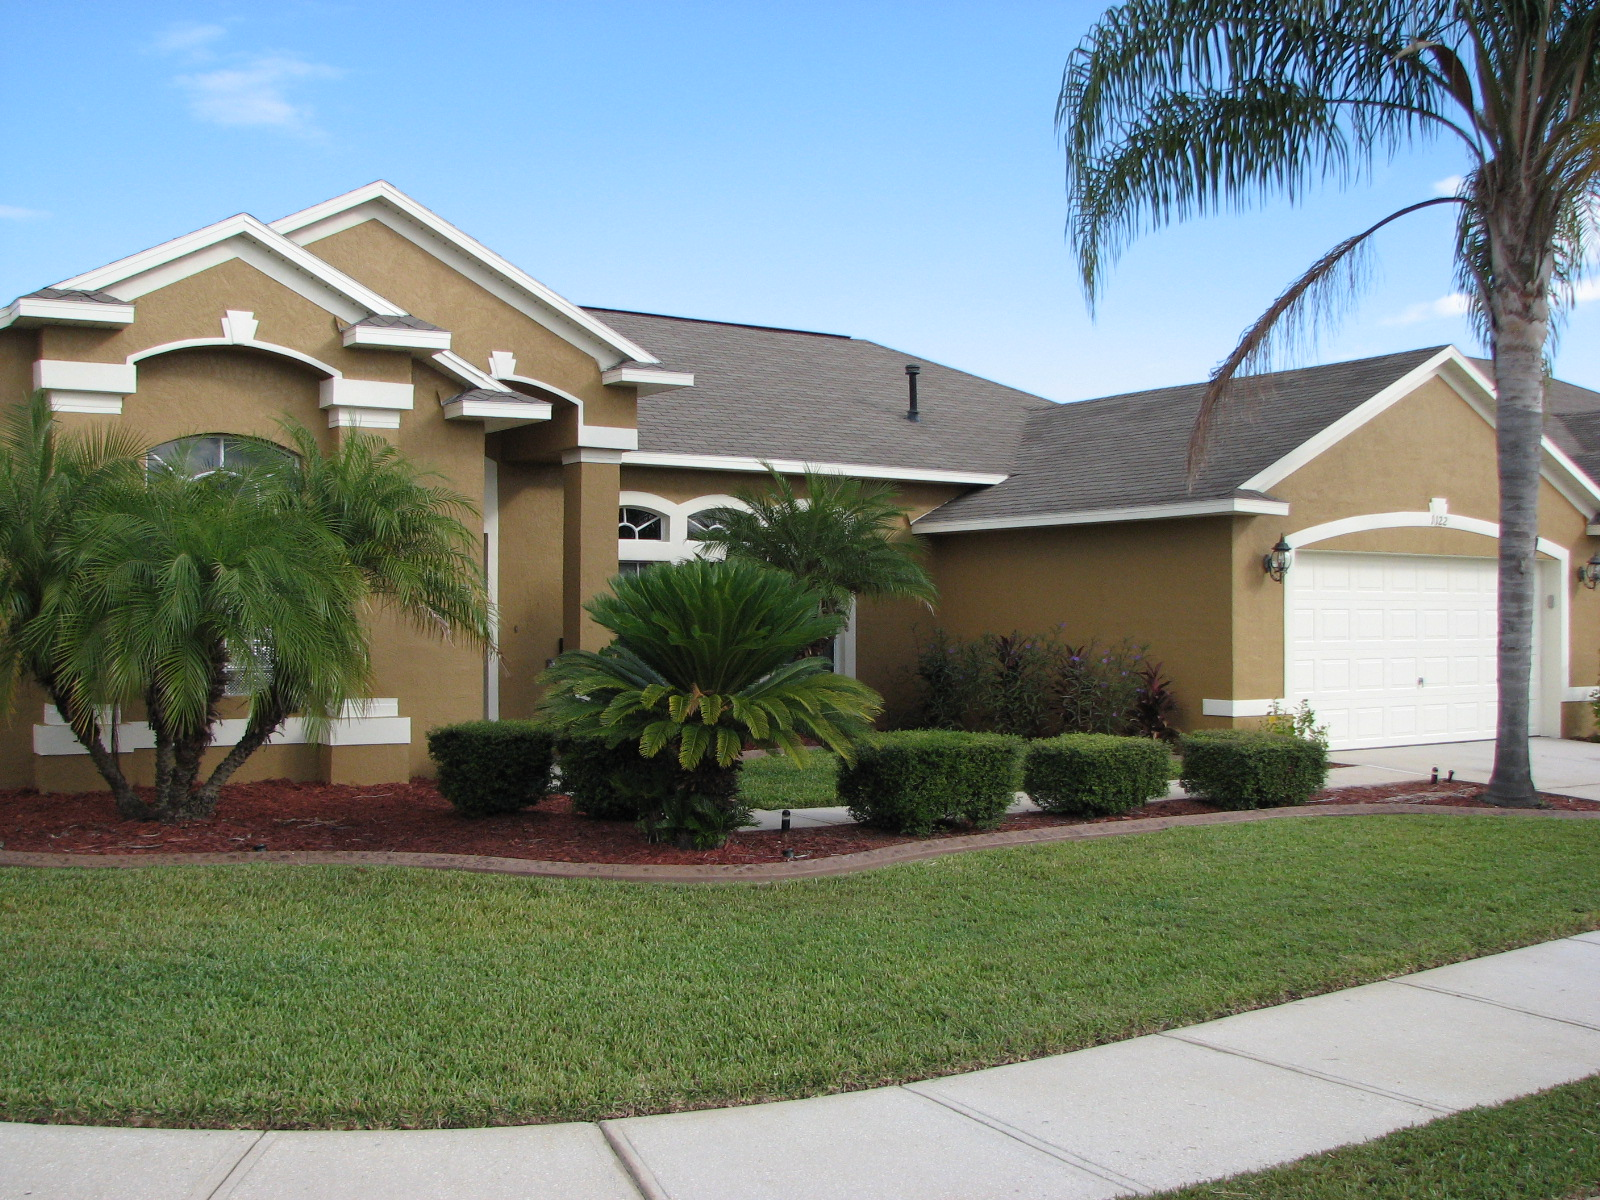 House Painting Project In Melbourne Fl